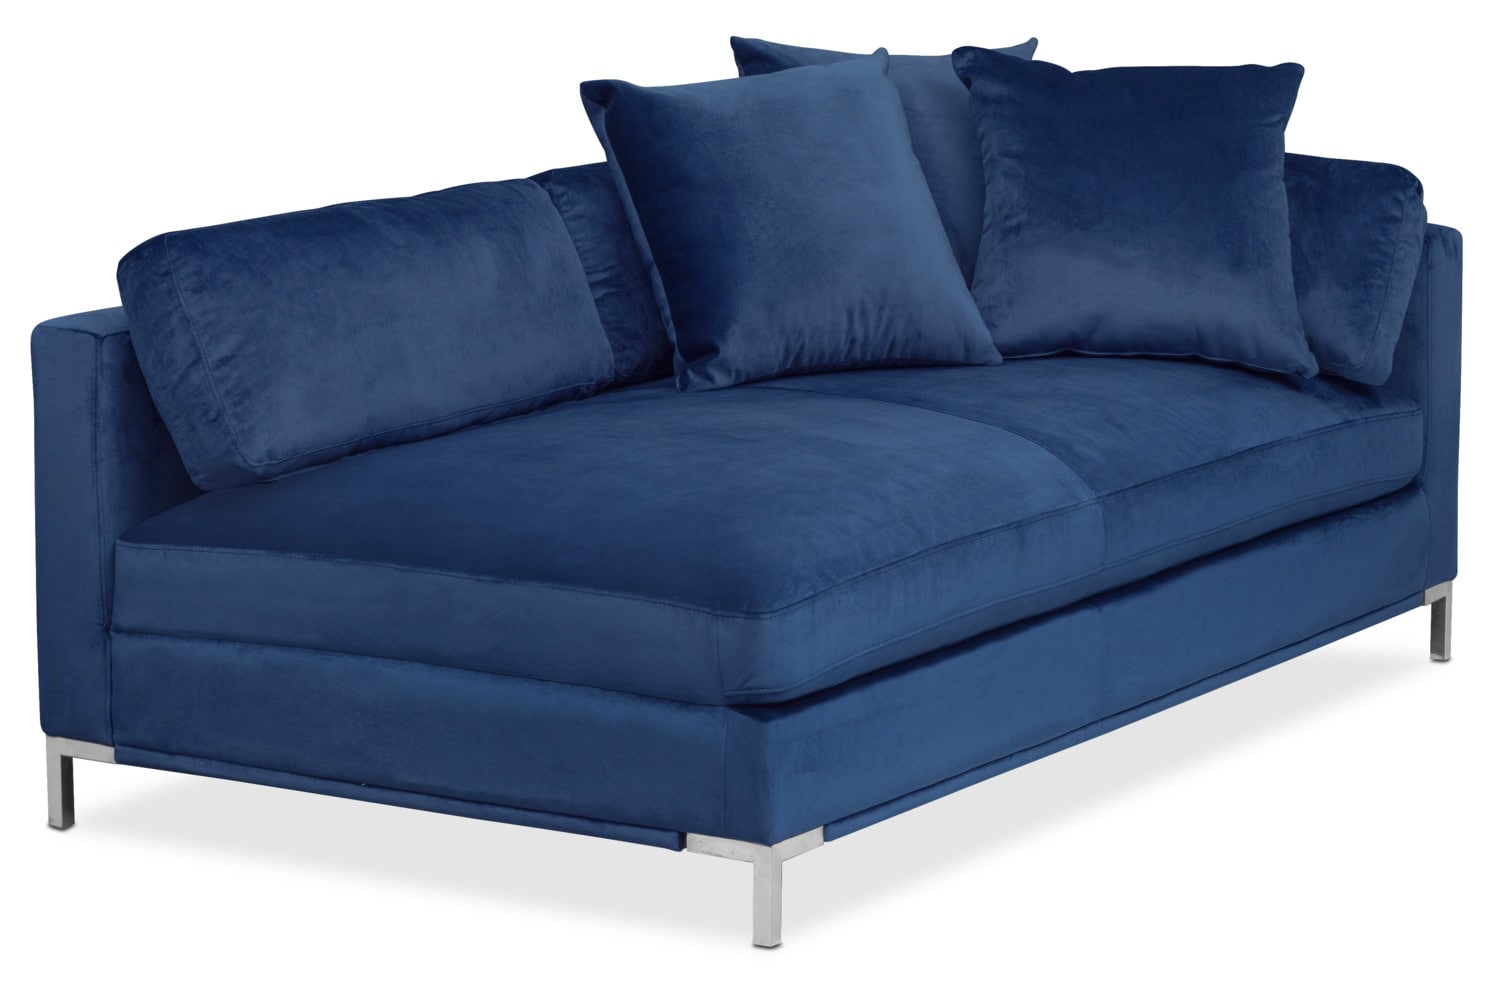 Living Room Furniture - Moda Right-Facing Chaise - Blue